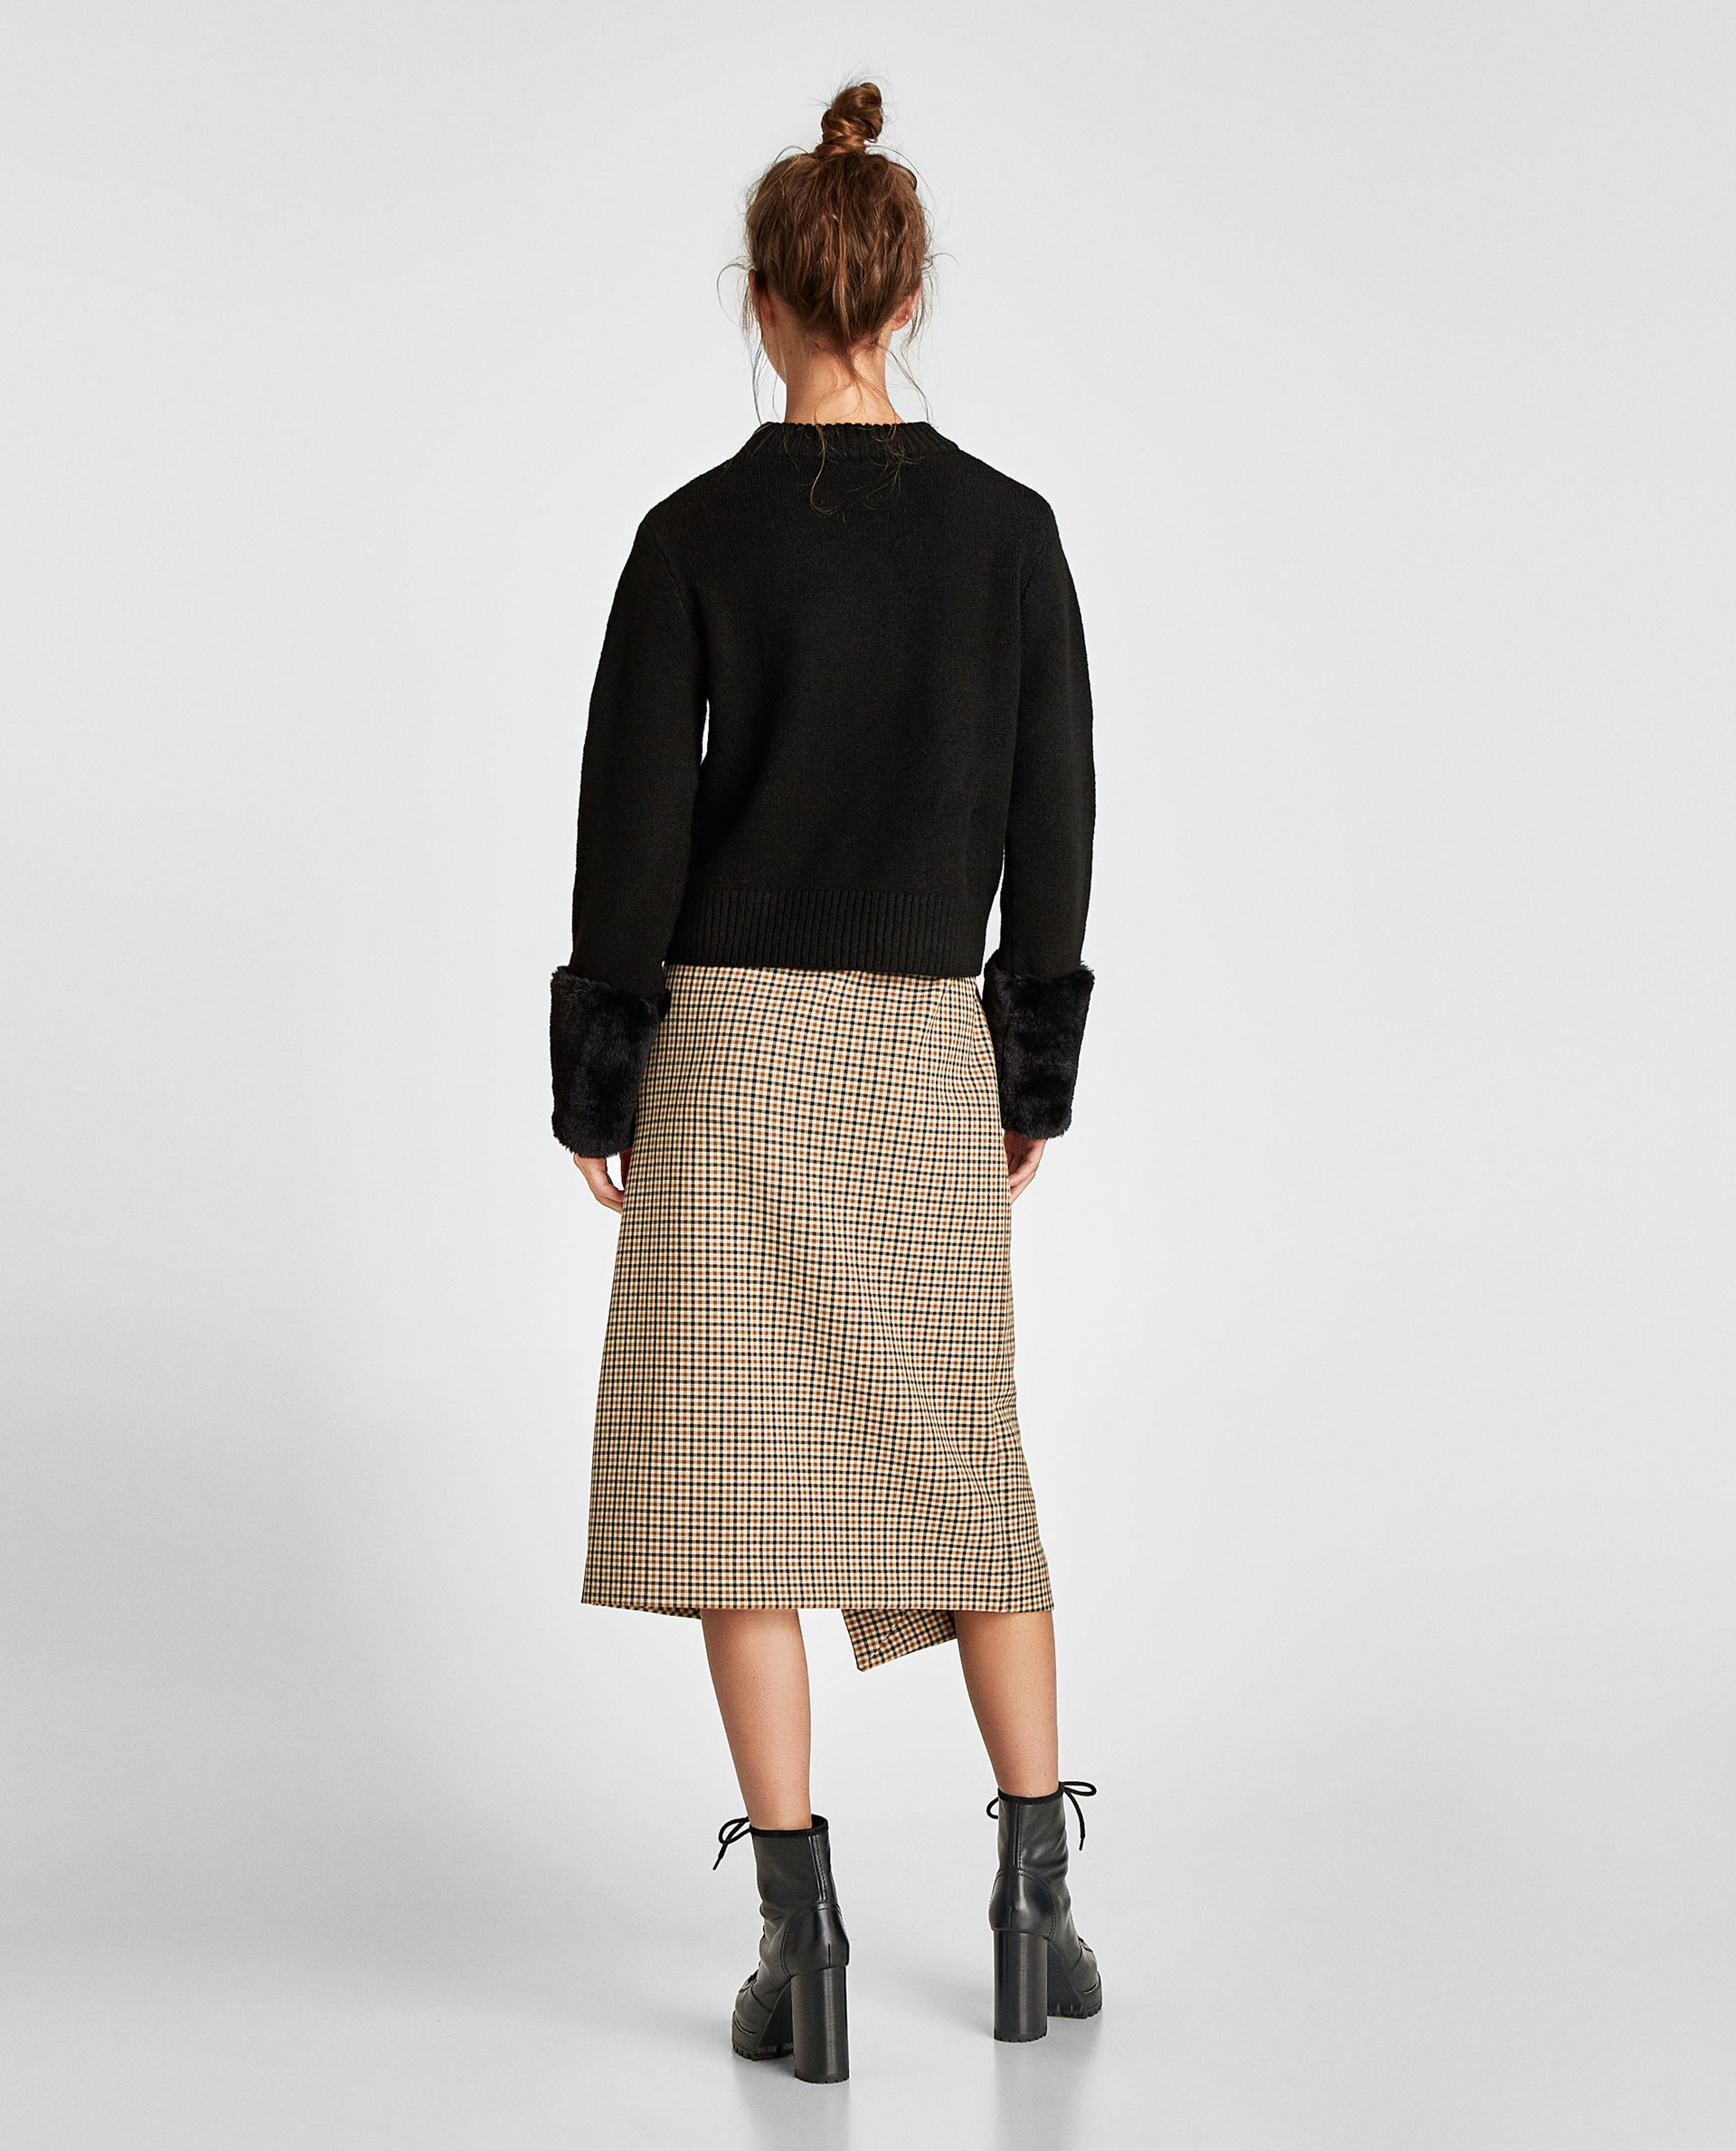 【送料込】ZARA*袖ファー付き♪ SWEATER WITH TEXTURED CUFFS